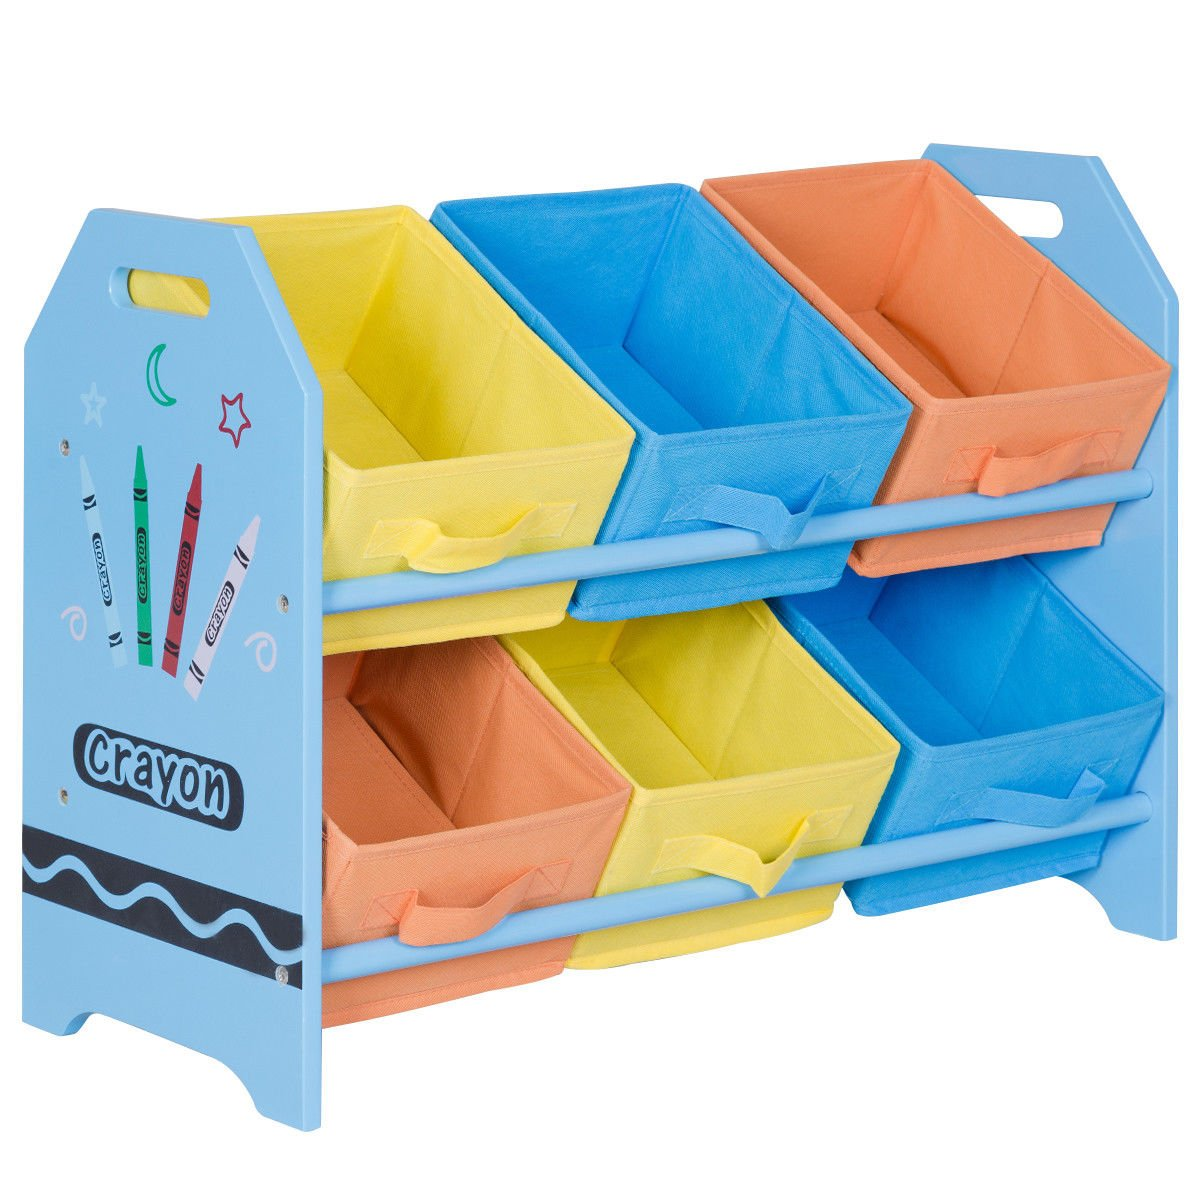 Costzon Kids Toy Organizer with 6 Multi-Color Storage Bins